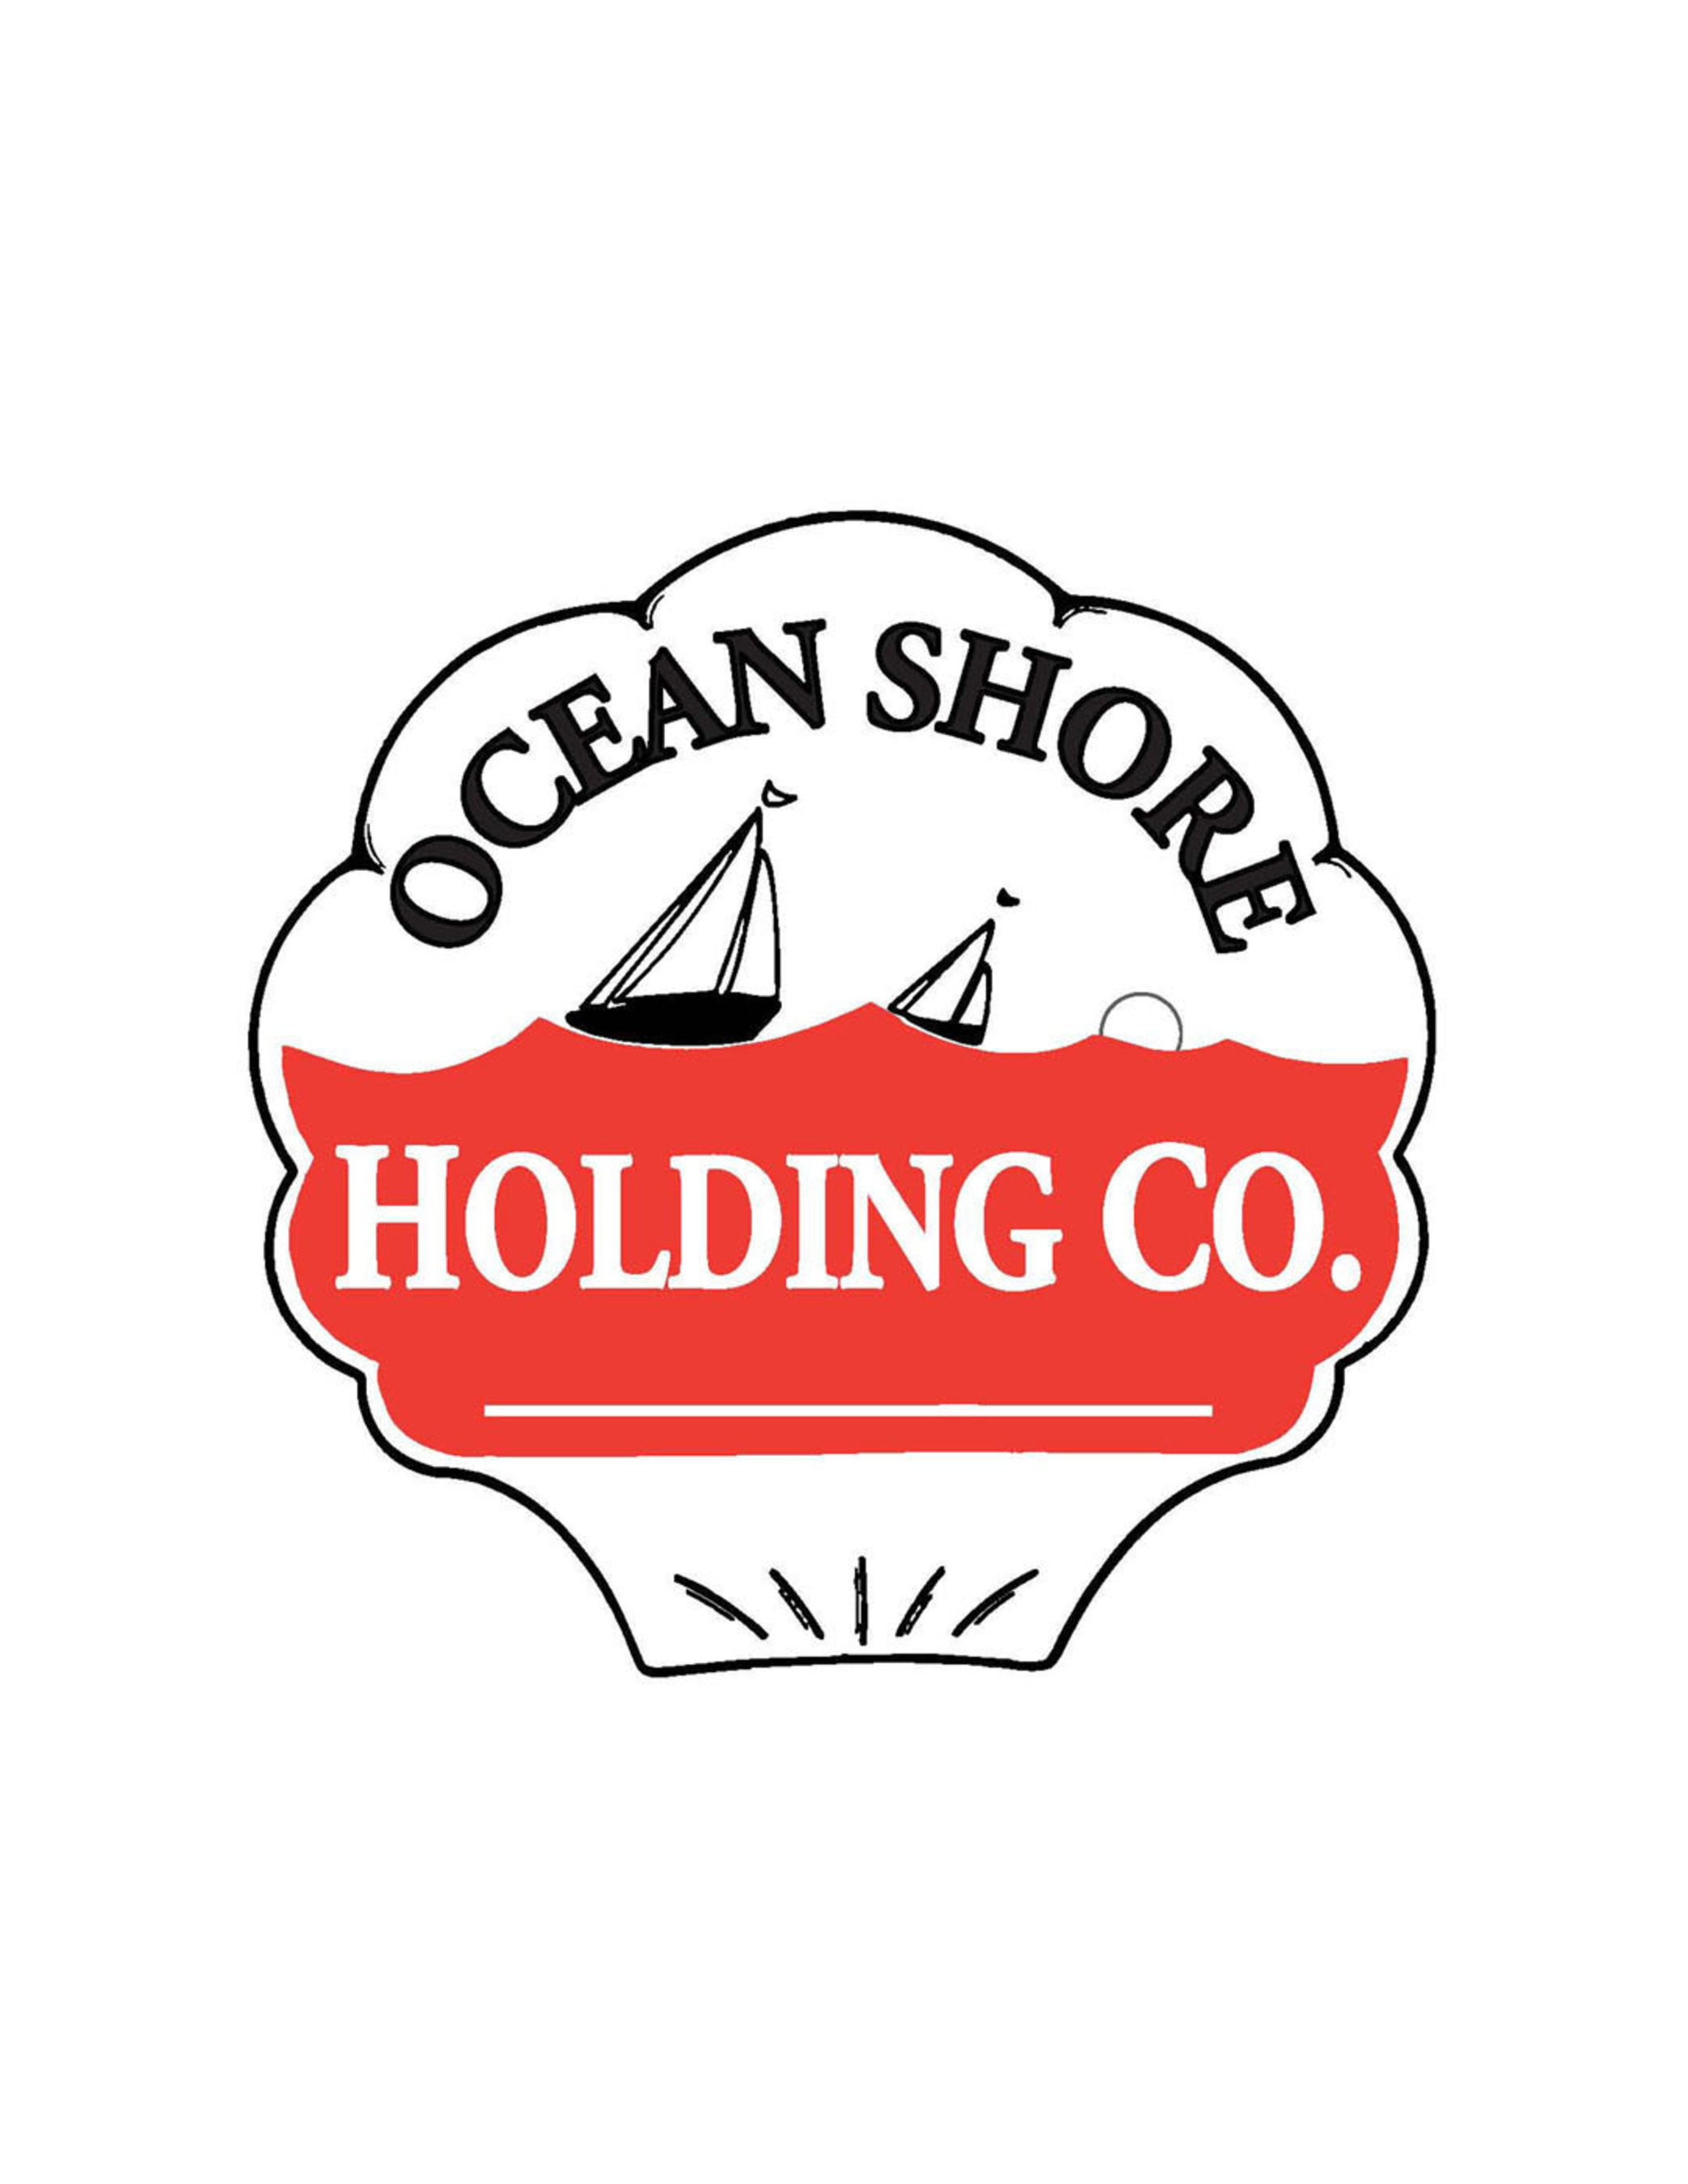 Ocean Shore Holding Co. (PRNewsFoto/Ocean Shore Holding Co.)